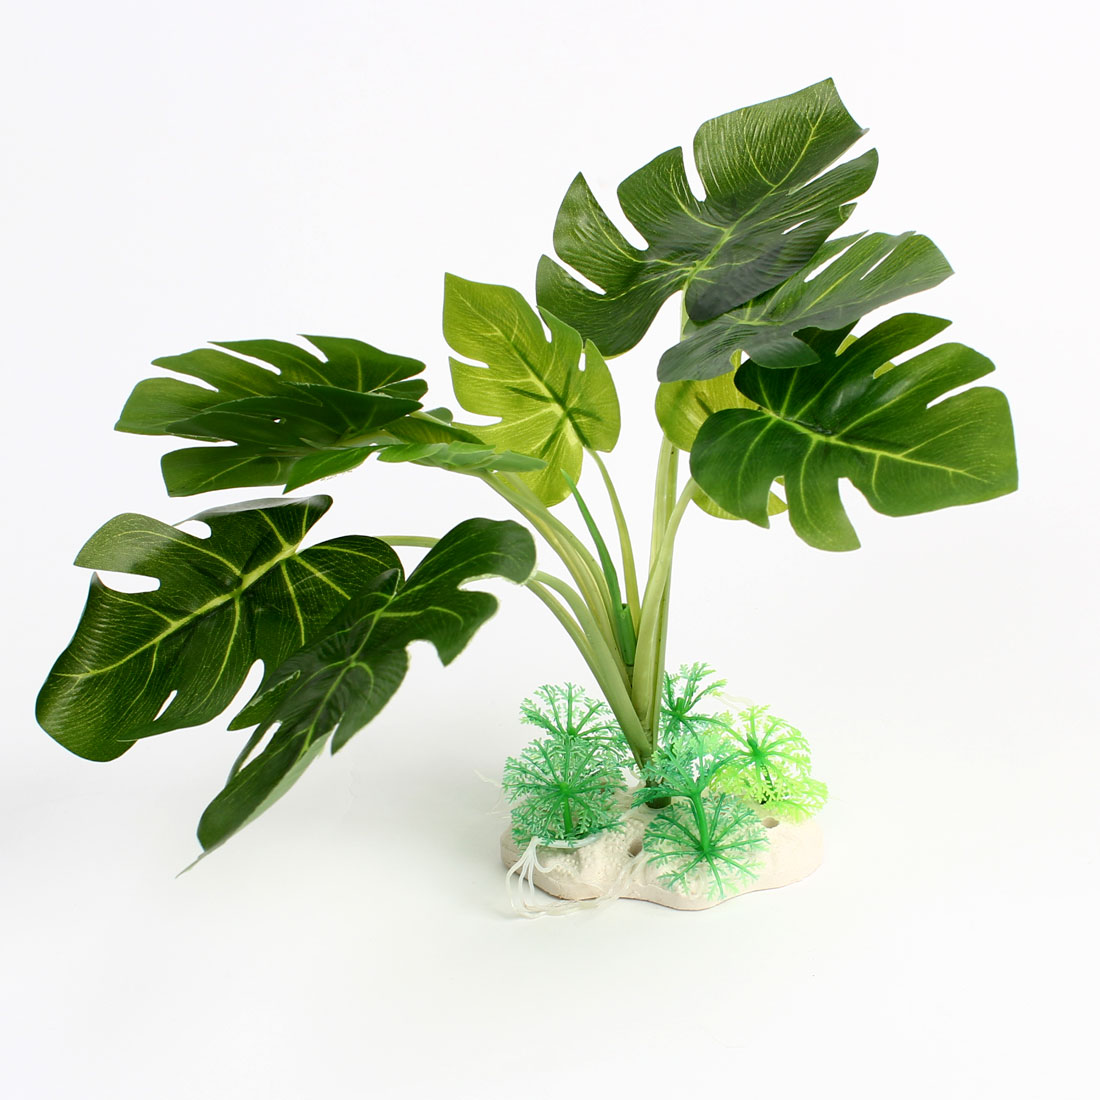 Aquarium Fishbowl Ornament Green Leaves Plastic Underwater Plant 25cm